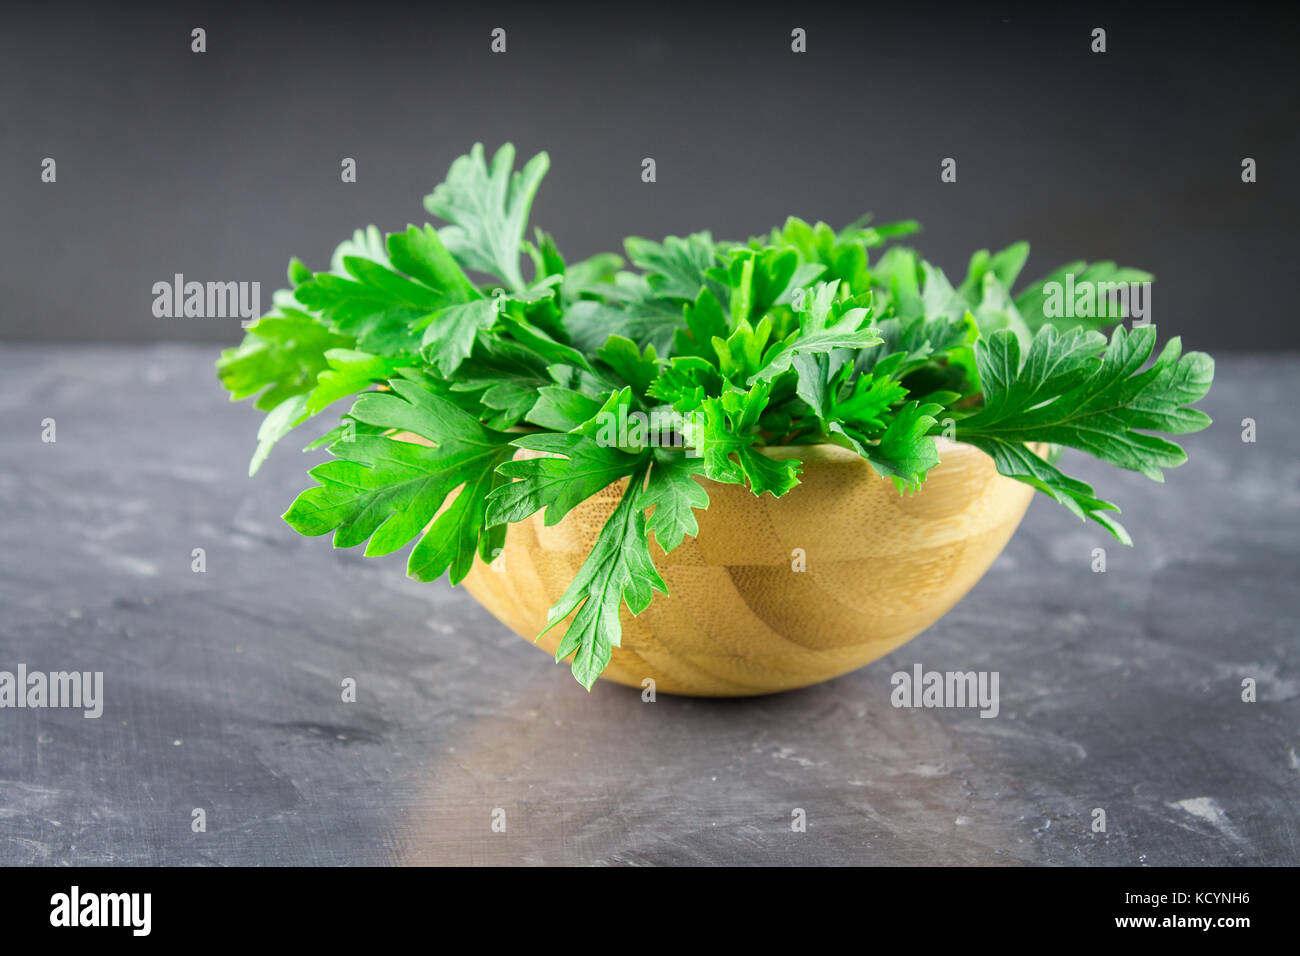 parsley in a wooden bowl on a gray background. - Stock Image